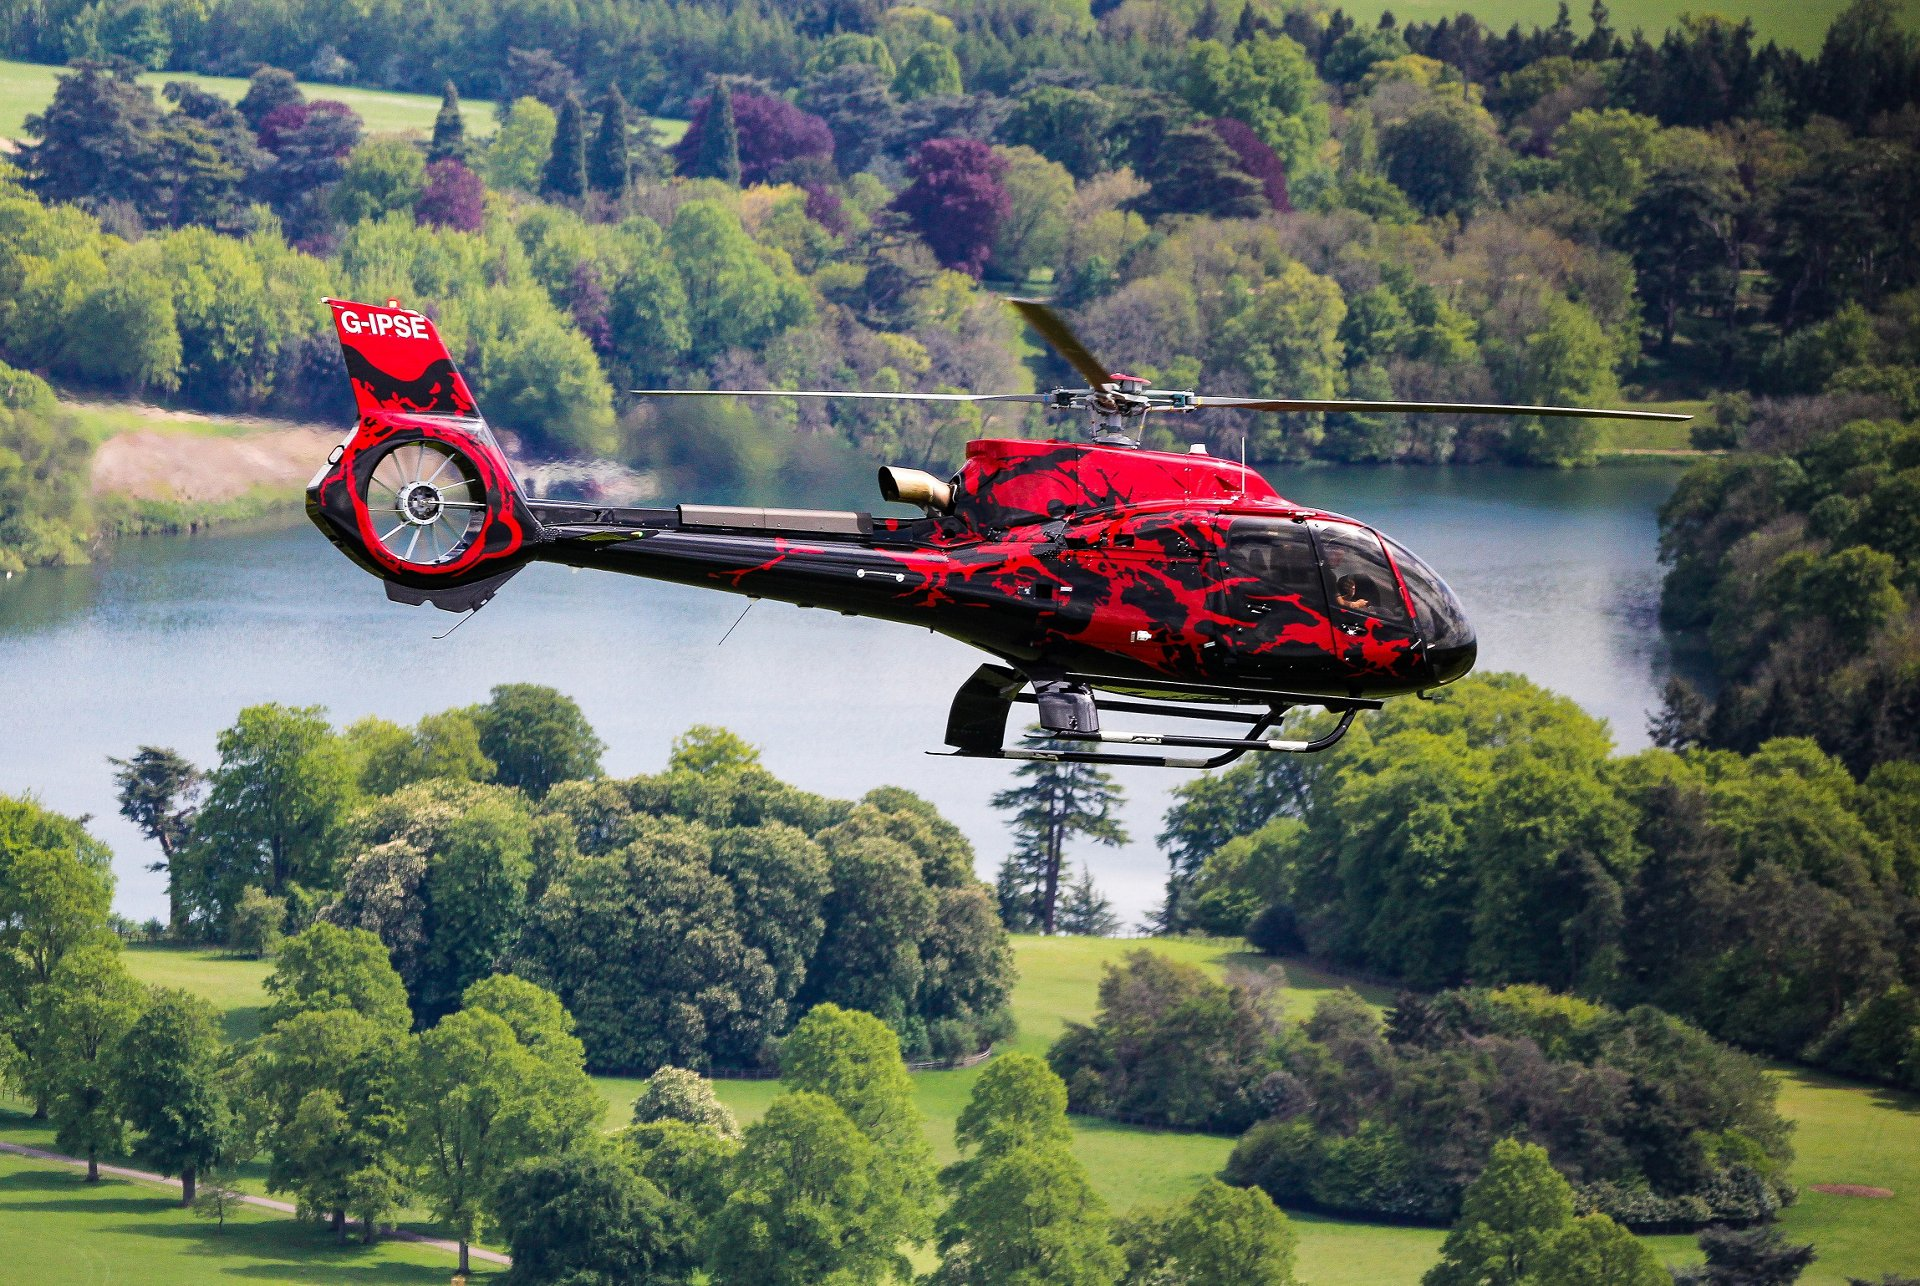 This strikingly painted Airbus ACH130 helicopter, captured here over the English countryside, is due to be delivered to mobile home park entrepreneur Alfie Best a few days after the 2019 EBACE exhibition.